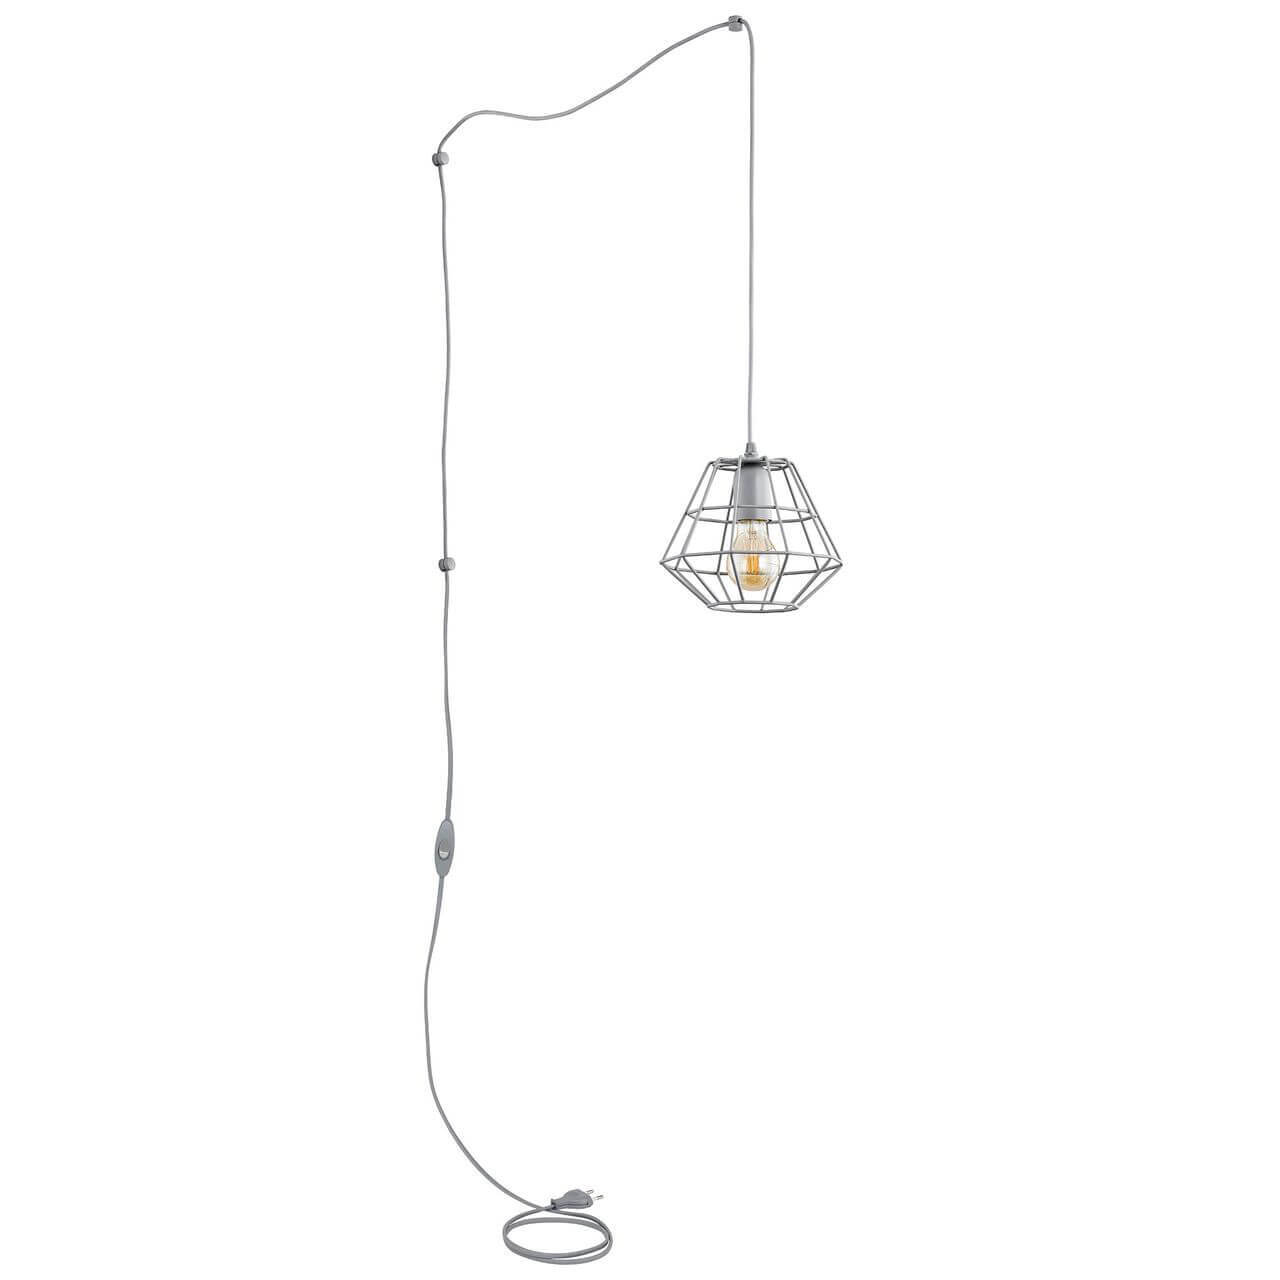 Светильник TK Lighting 2201 Diamond Gray